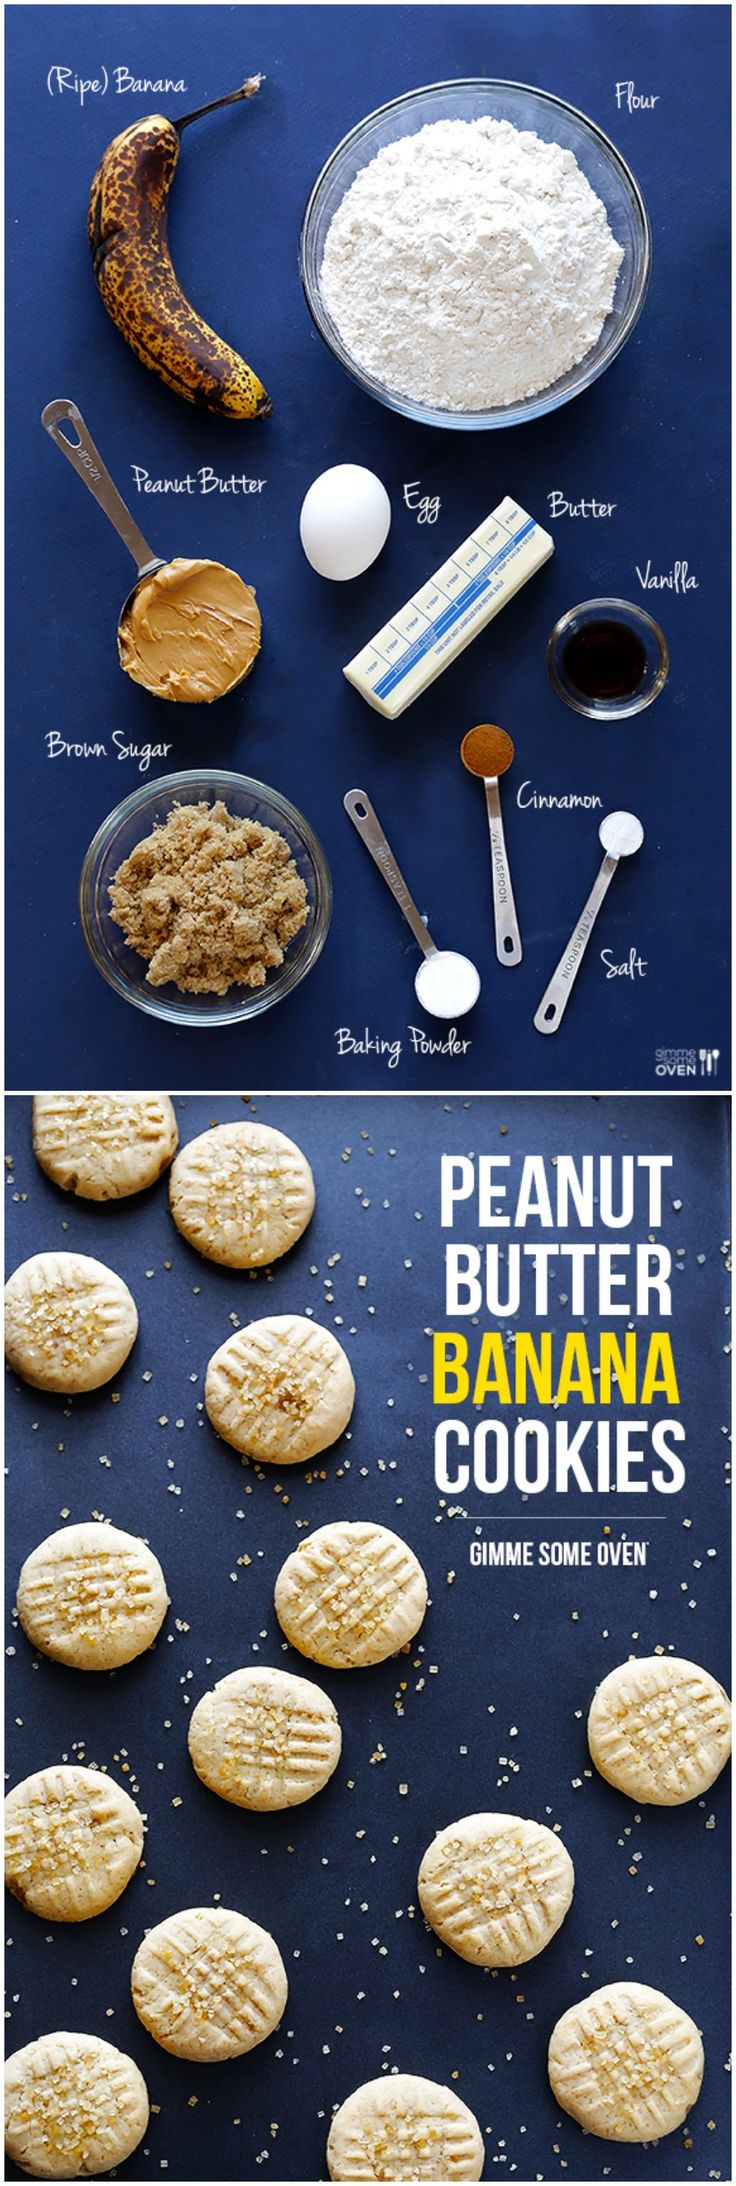 Peanut Butter Banana Cookies -- these are easy to make, and taste like a cross between banana bread and pb cookies